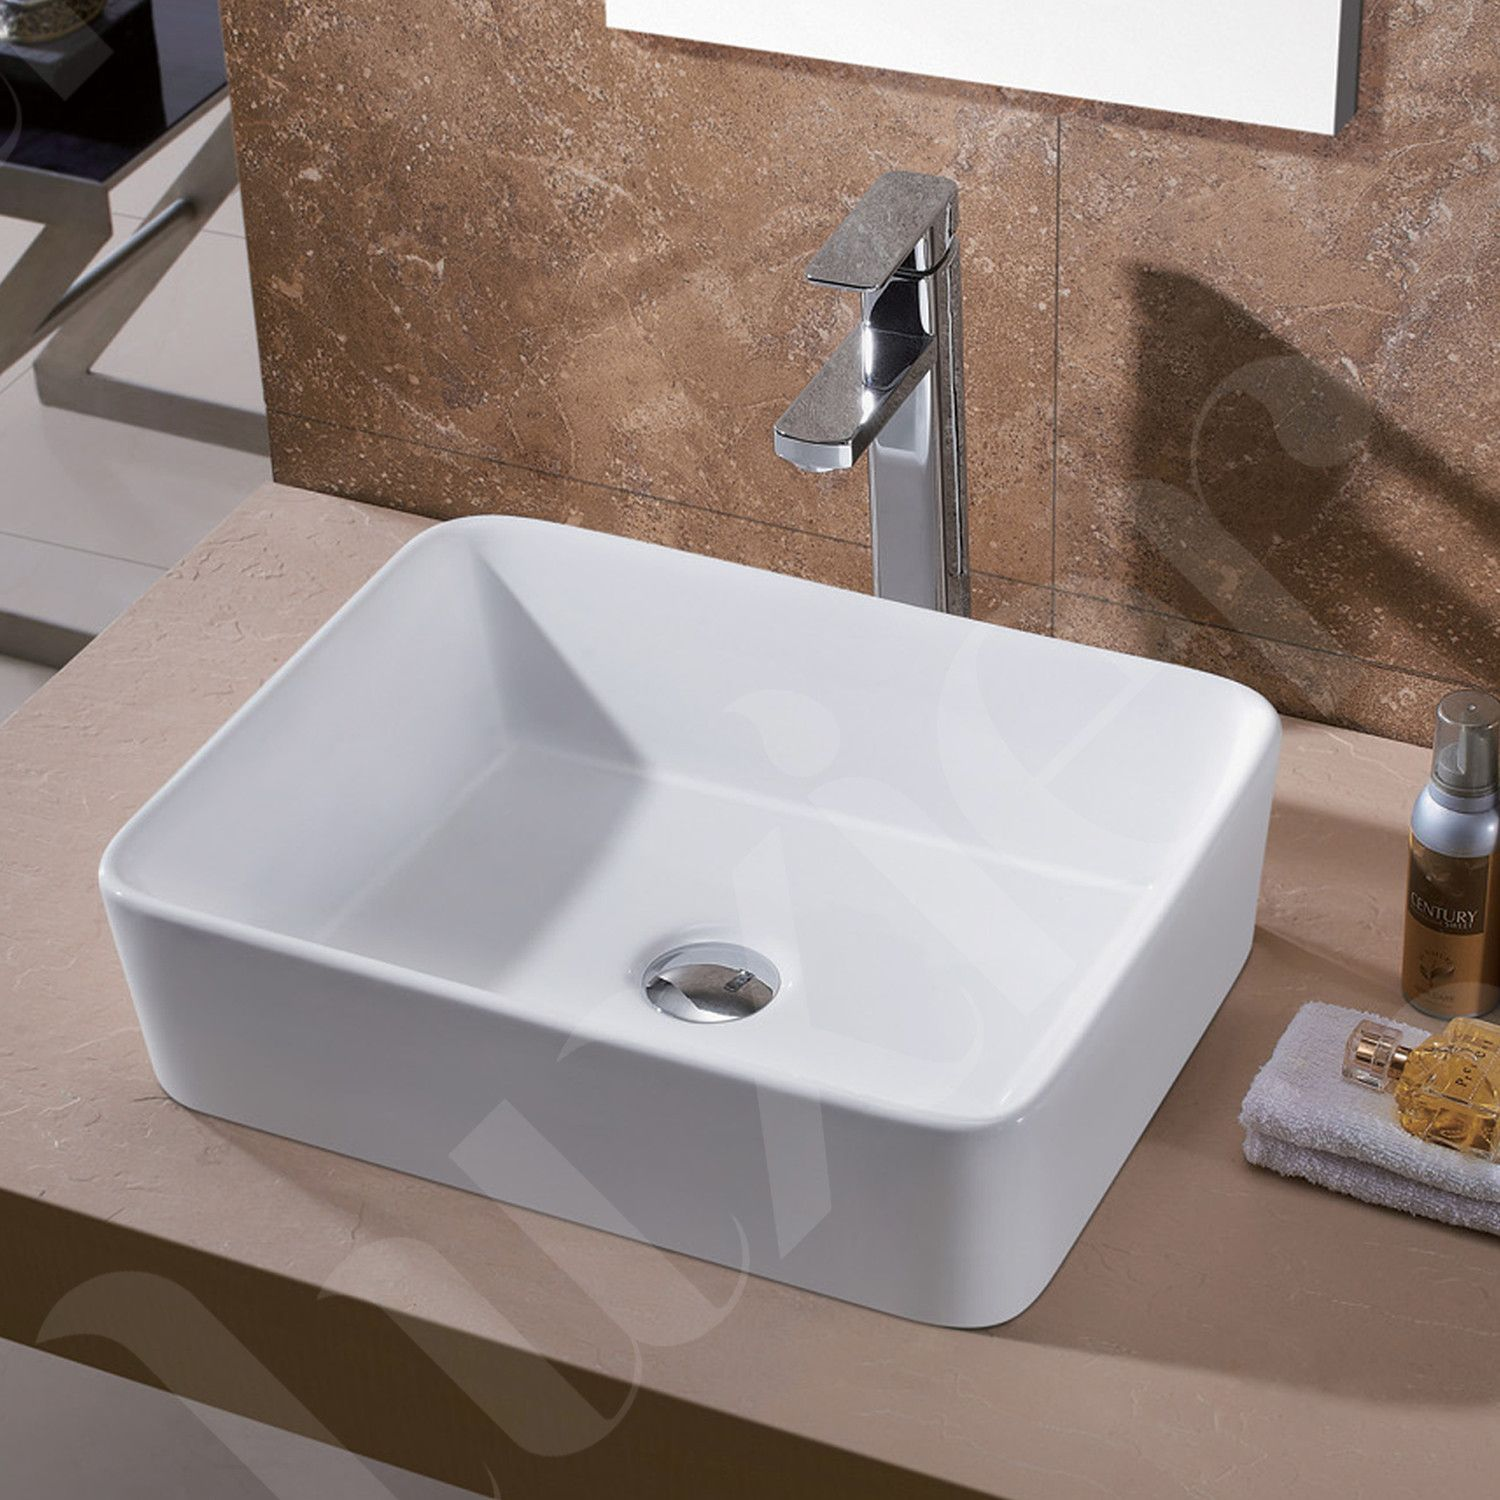 Luxier Porcelain Ceramic Vessel Vanity Bathroom Sink